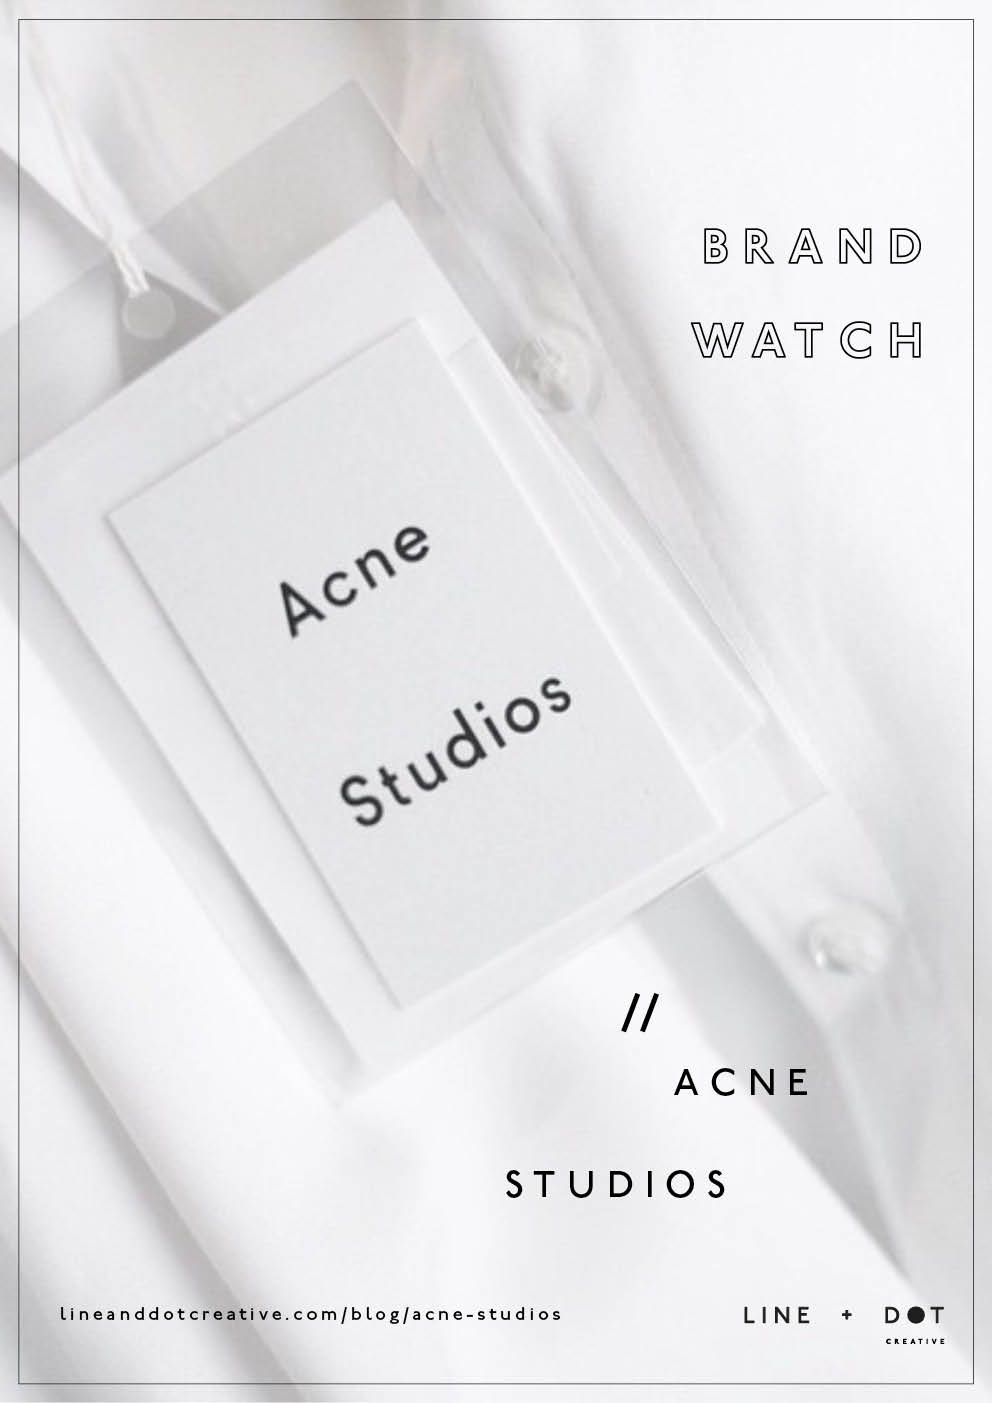 line and dot creative acne studios brand watch Pinterest